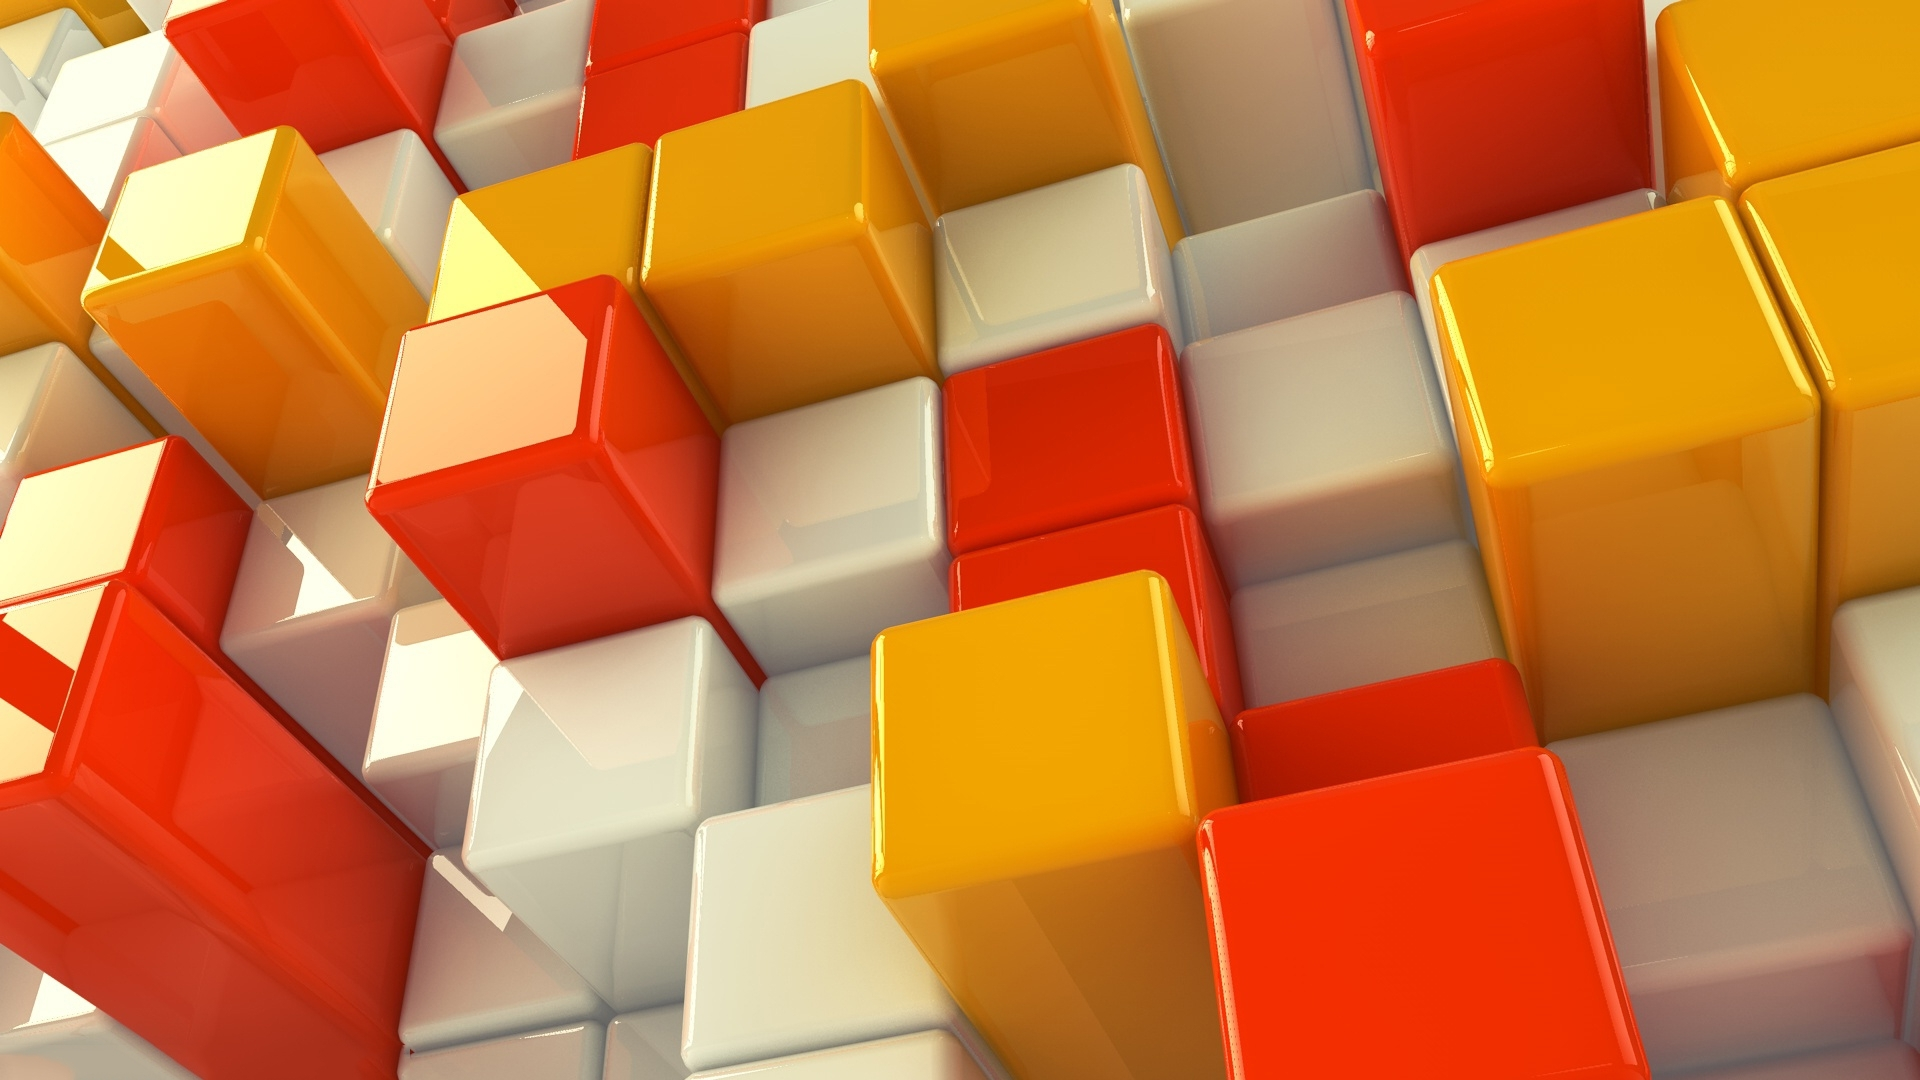 cubes wallpapers high quality download free